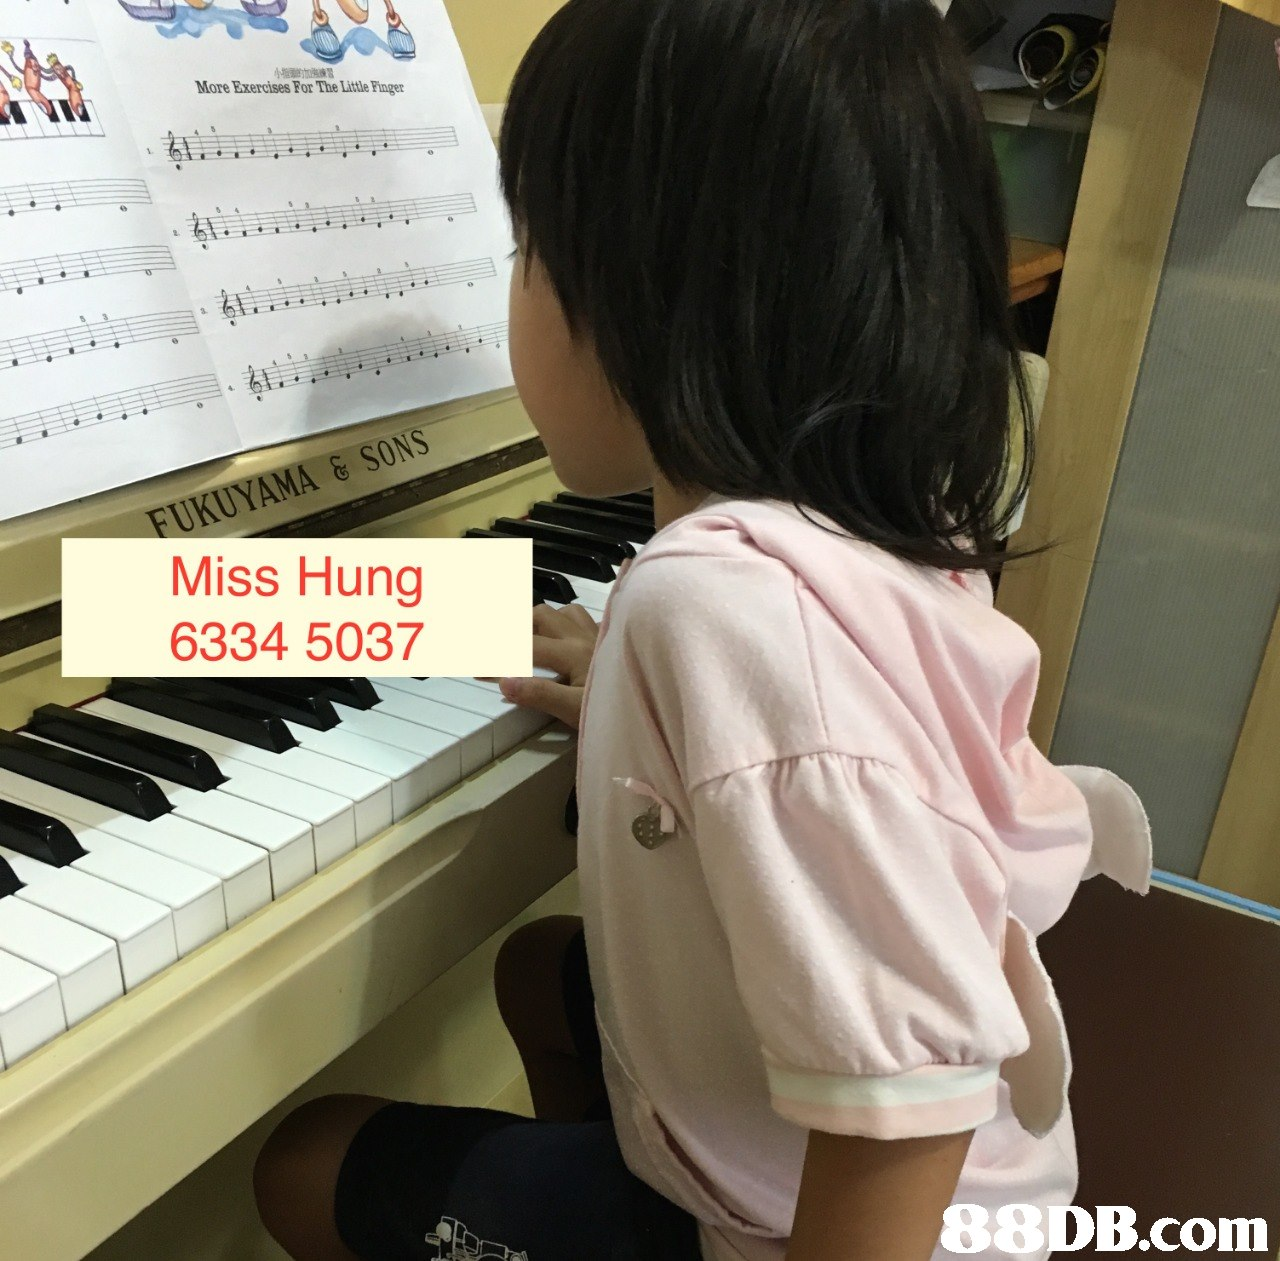 More Exercises For The Little Finger FUKUYAMA& SONS Miss Hung 6334 5037 88DB.com  piano